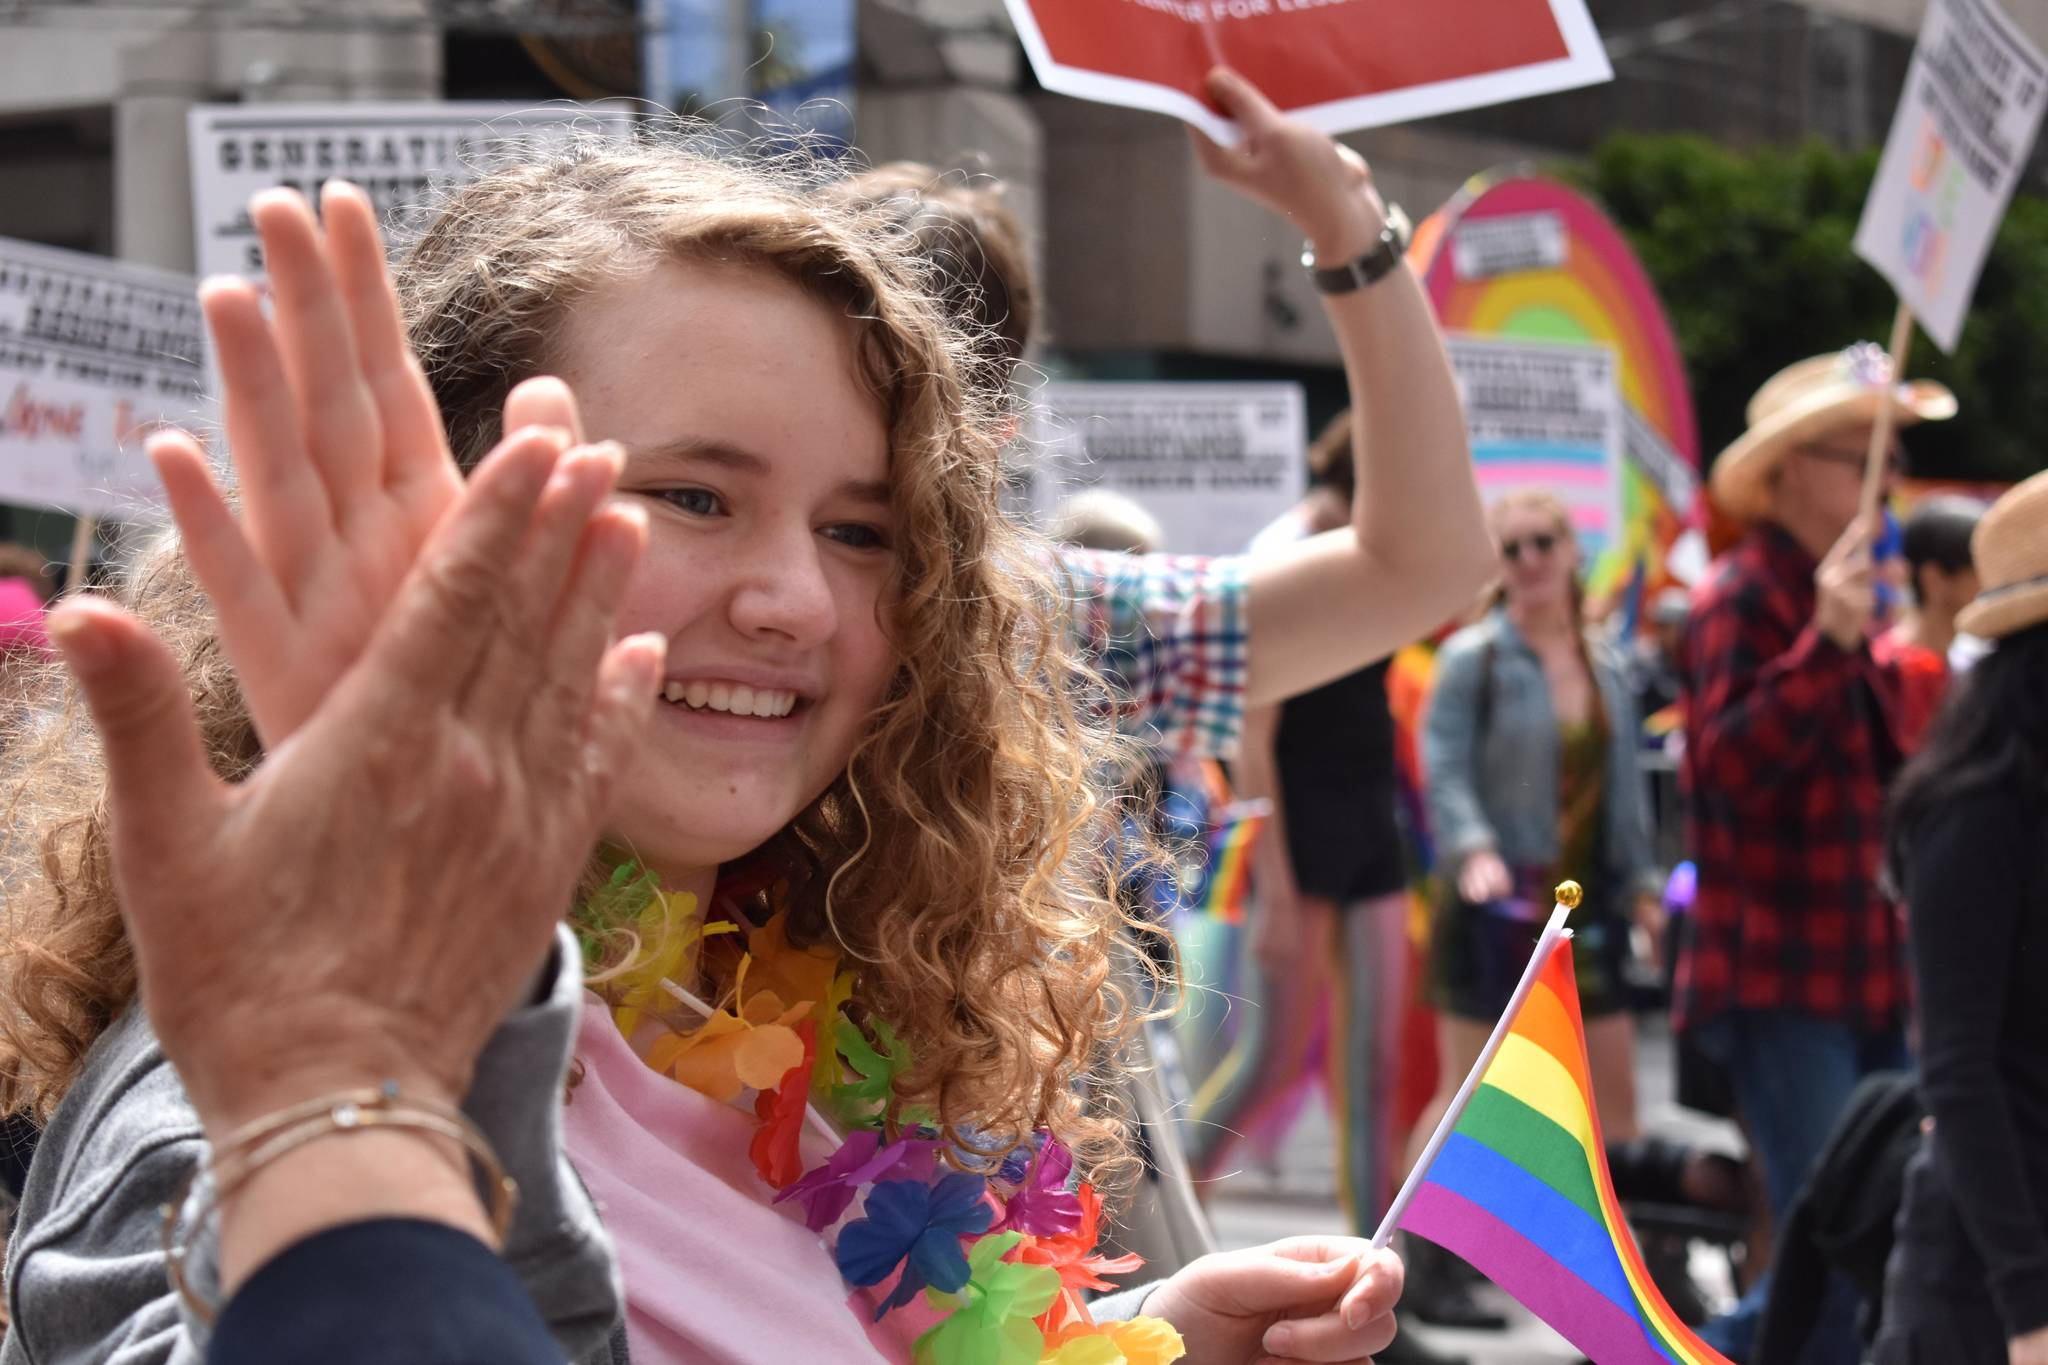 A young girl marching in the SF Pride Parade high-fives a spectator. (Lola Chase / Special to the S.F. Examiner)